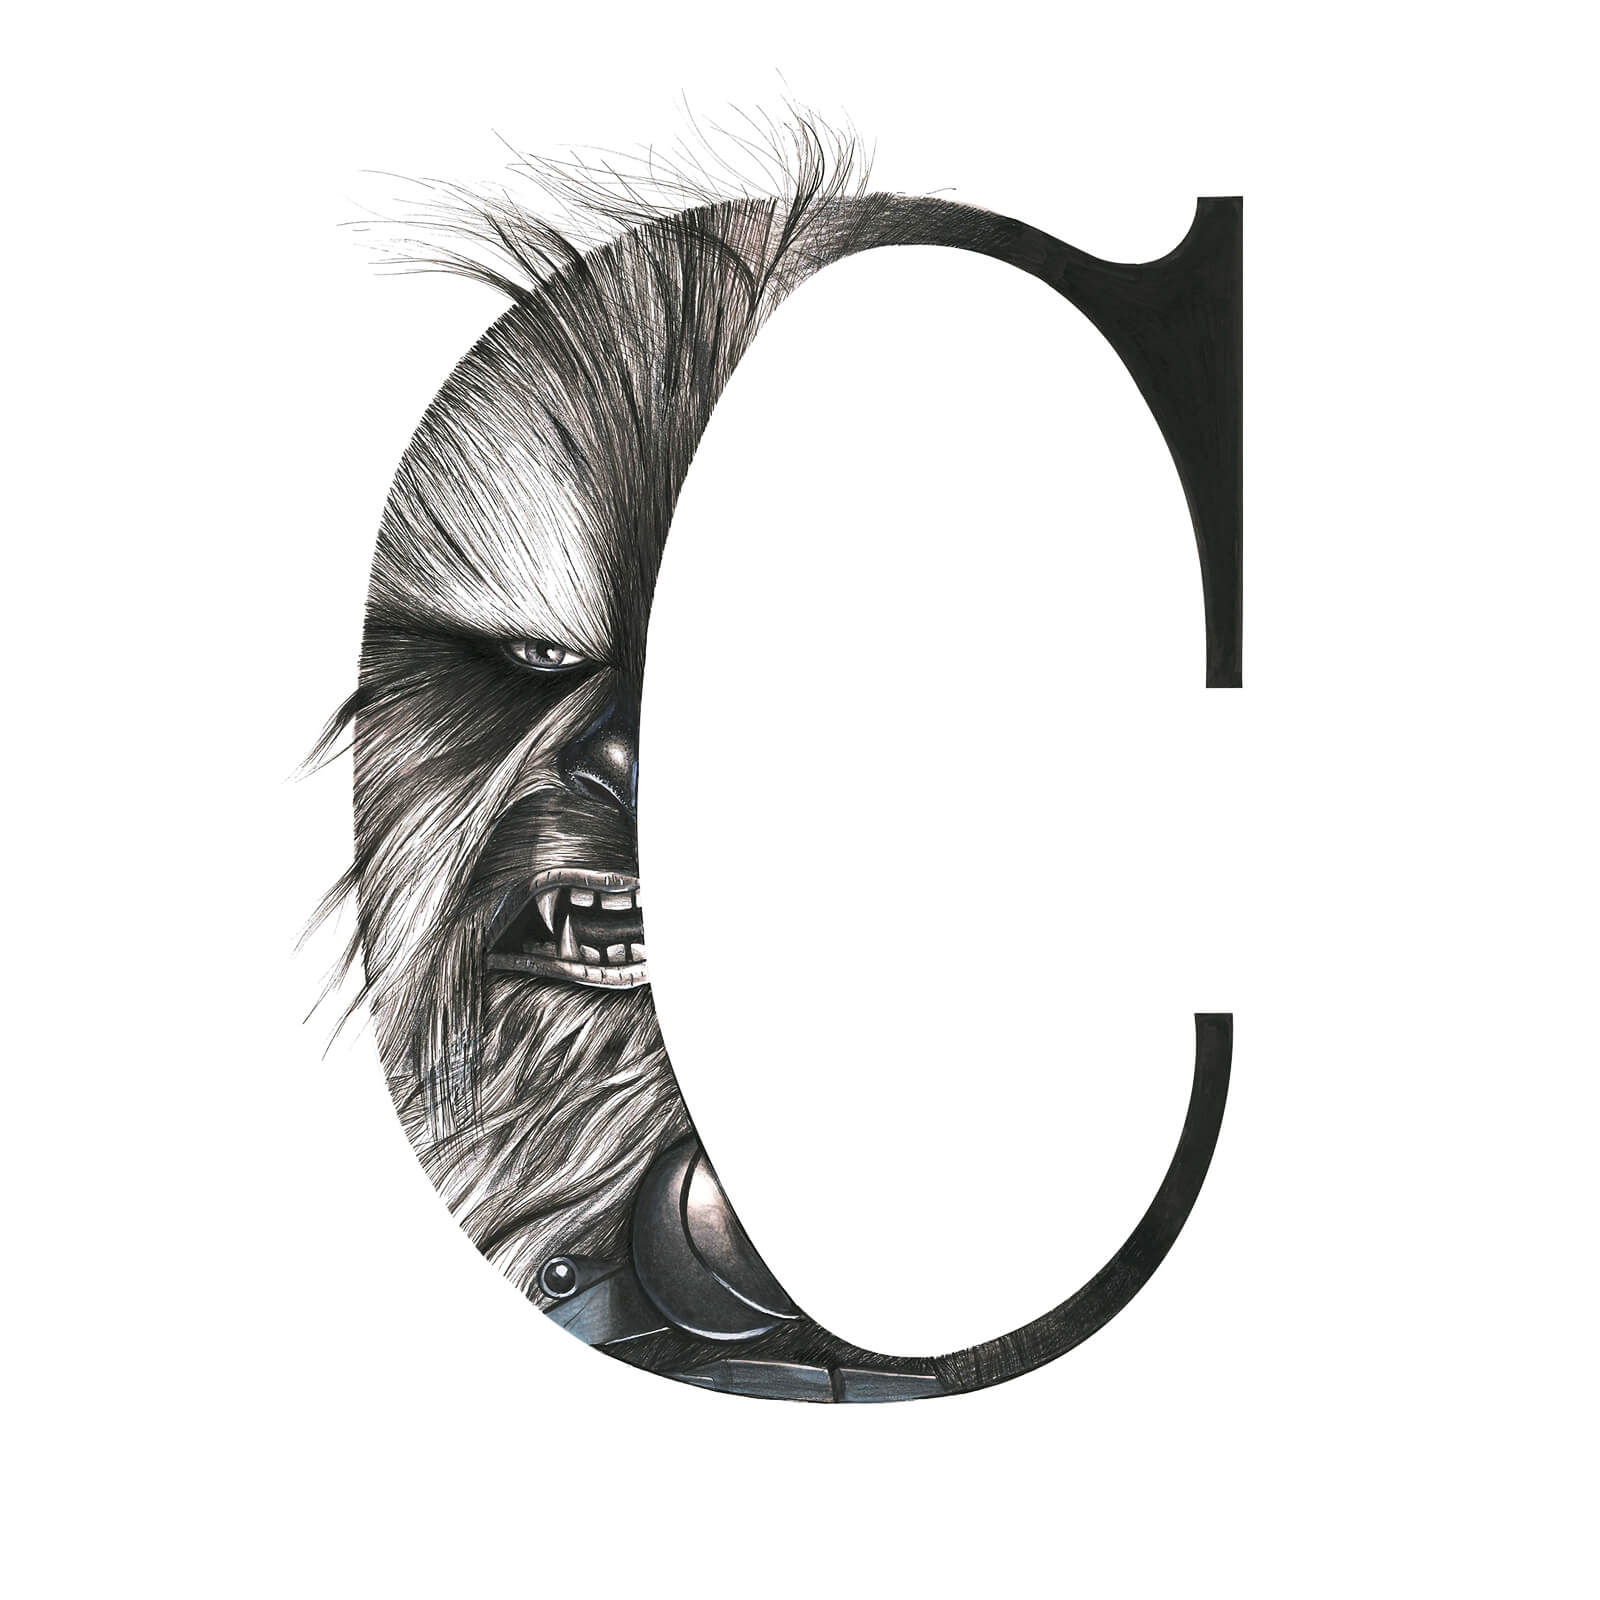 C for Chewbacca - Oscar Diaz